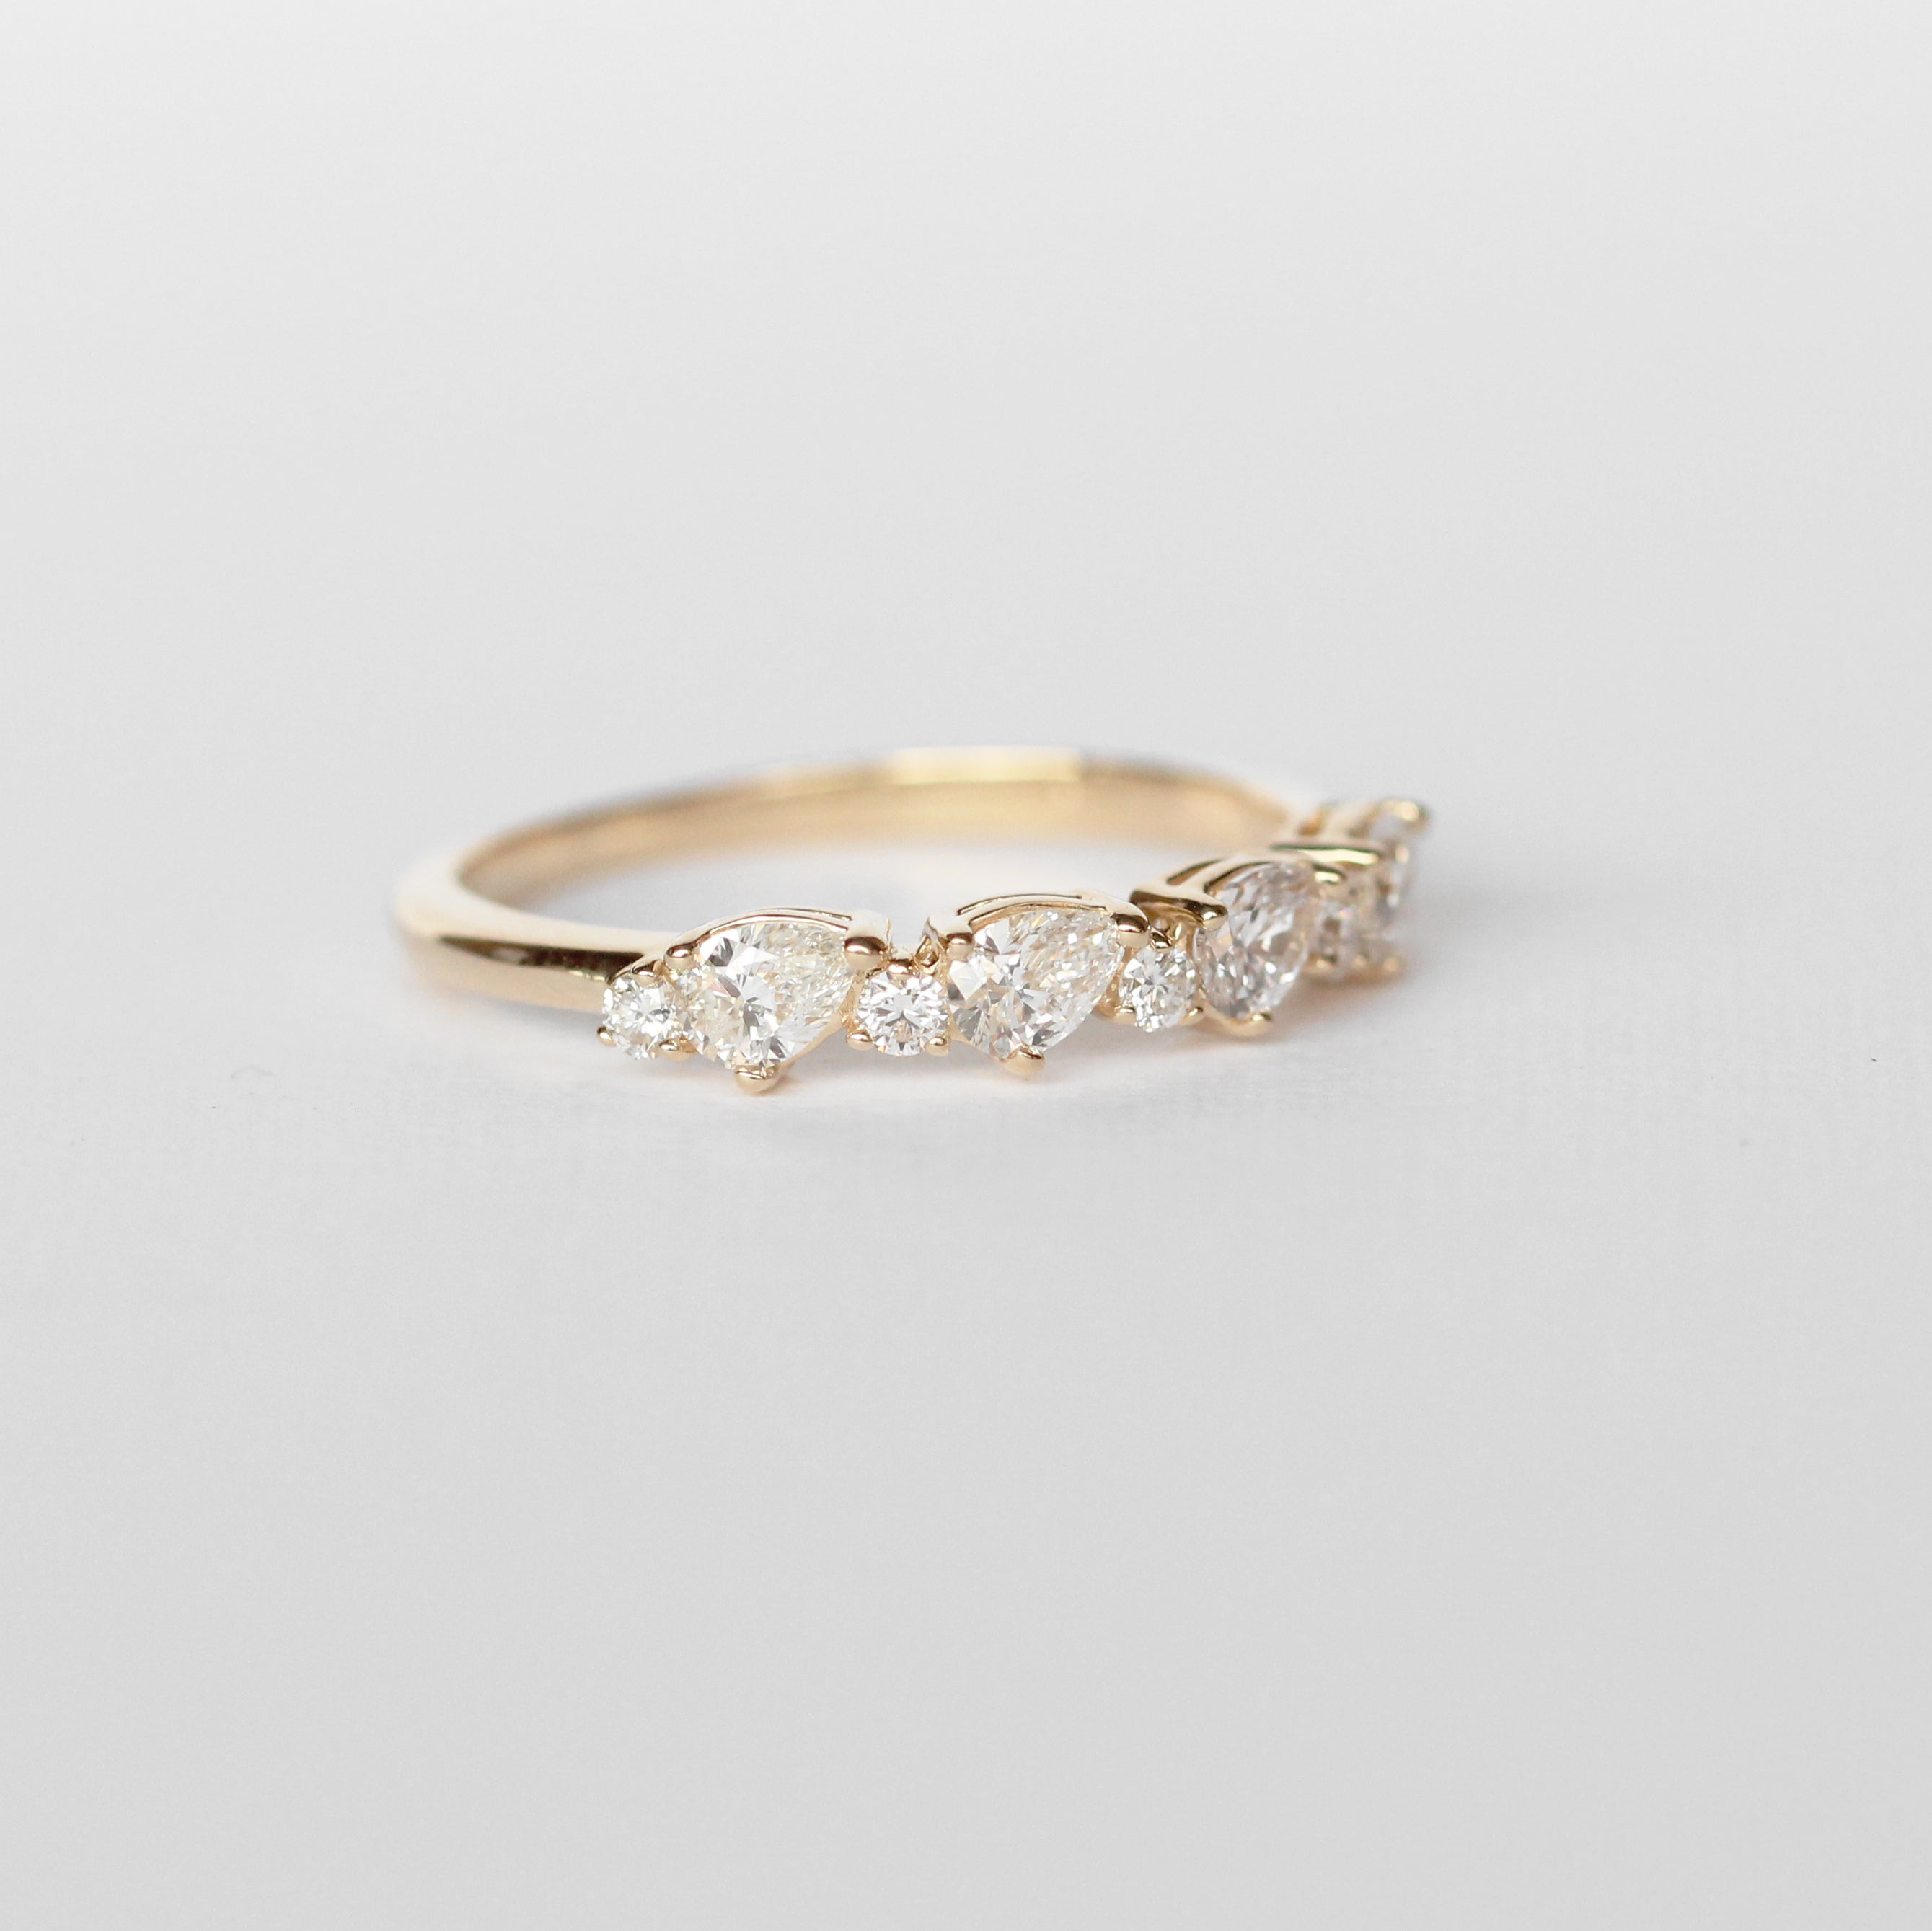 Reya Diamond Engagement Ring Band - White diamonds - Celestial Diamonds ® by Midwinter Co.